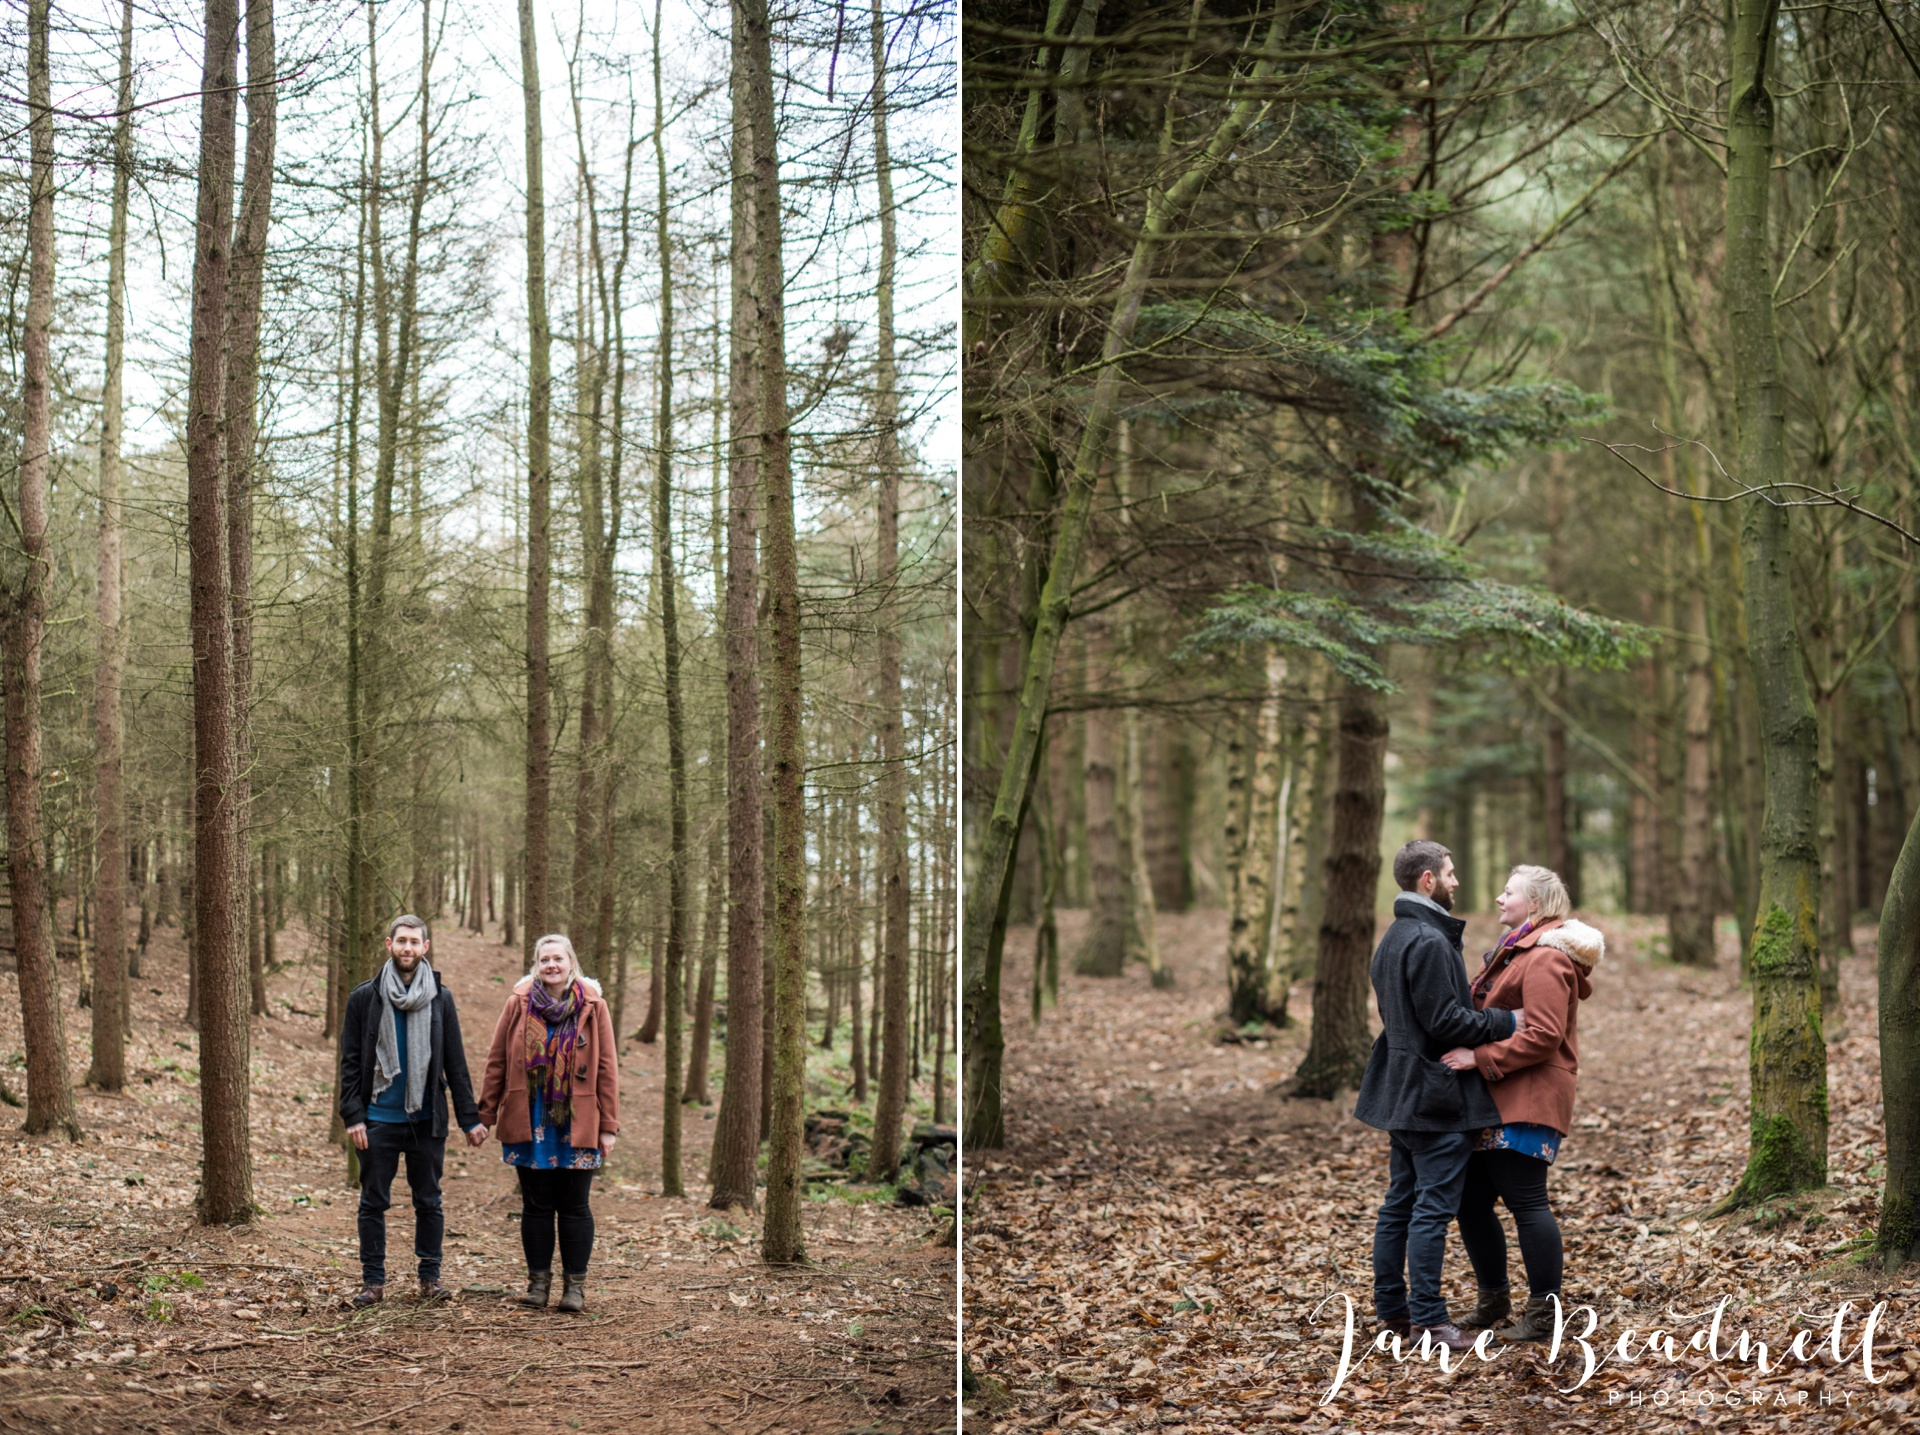 engagement photography Chevin jane beadnell wedding photographer Otley_0005